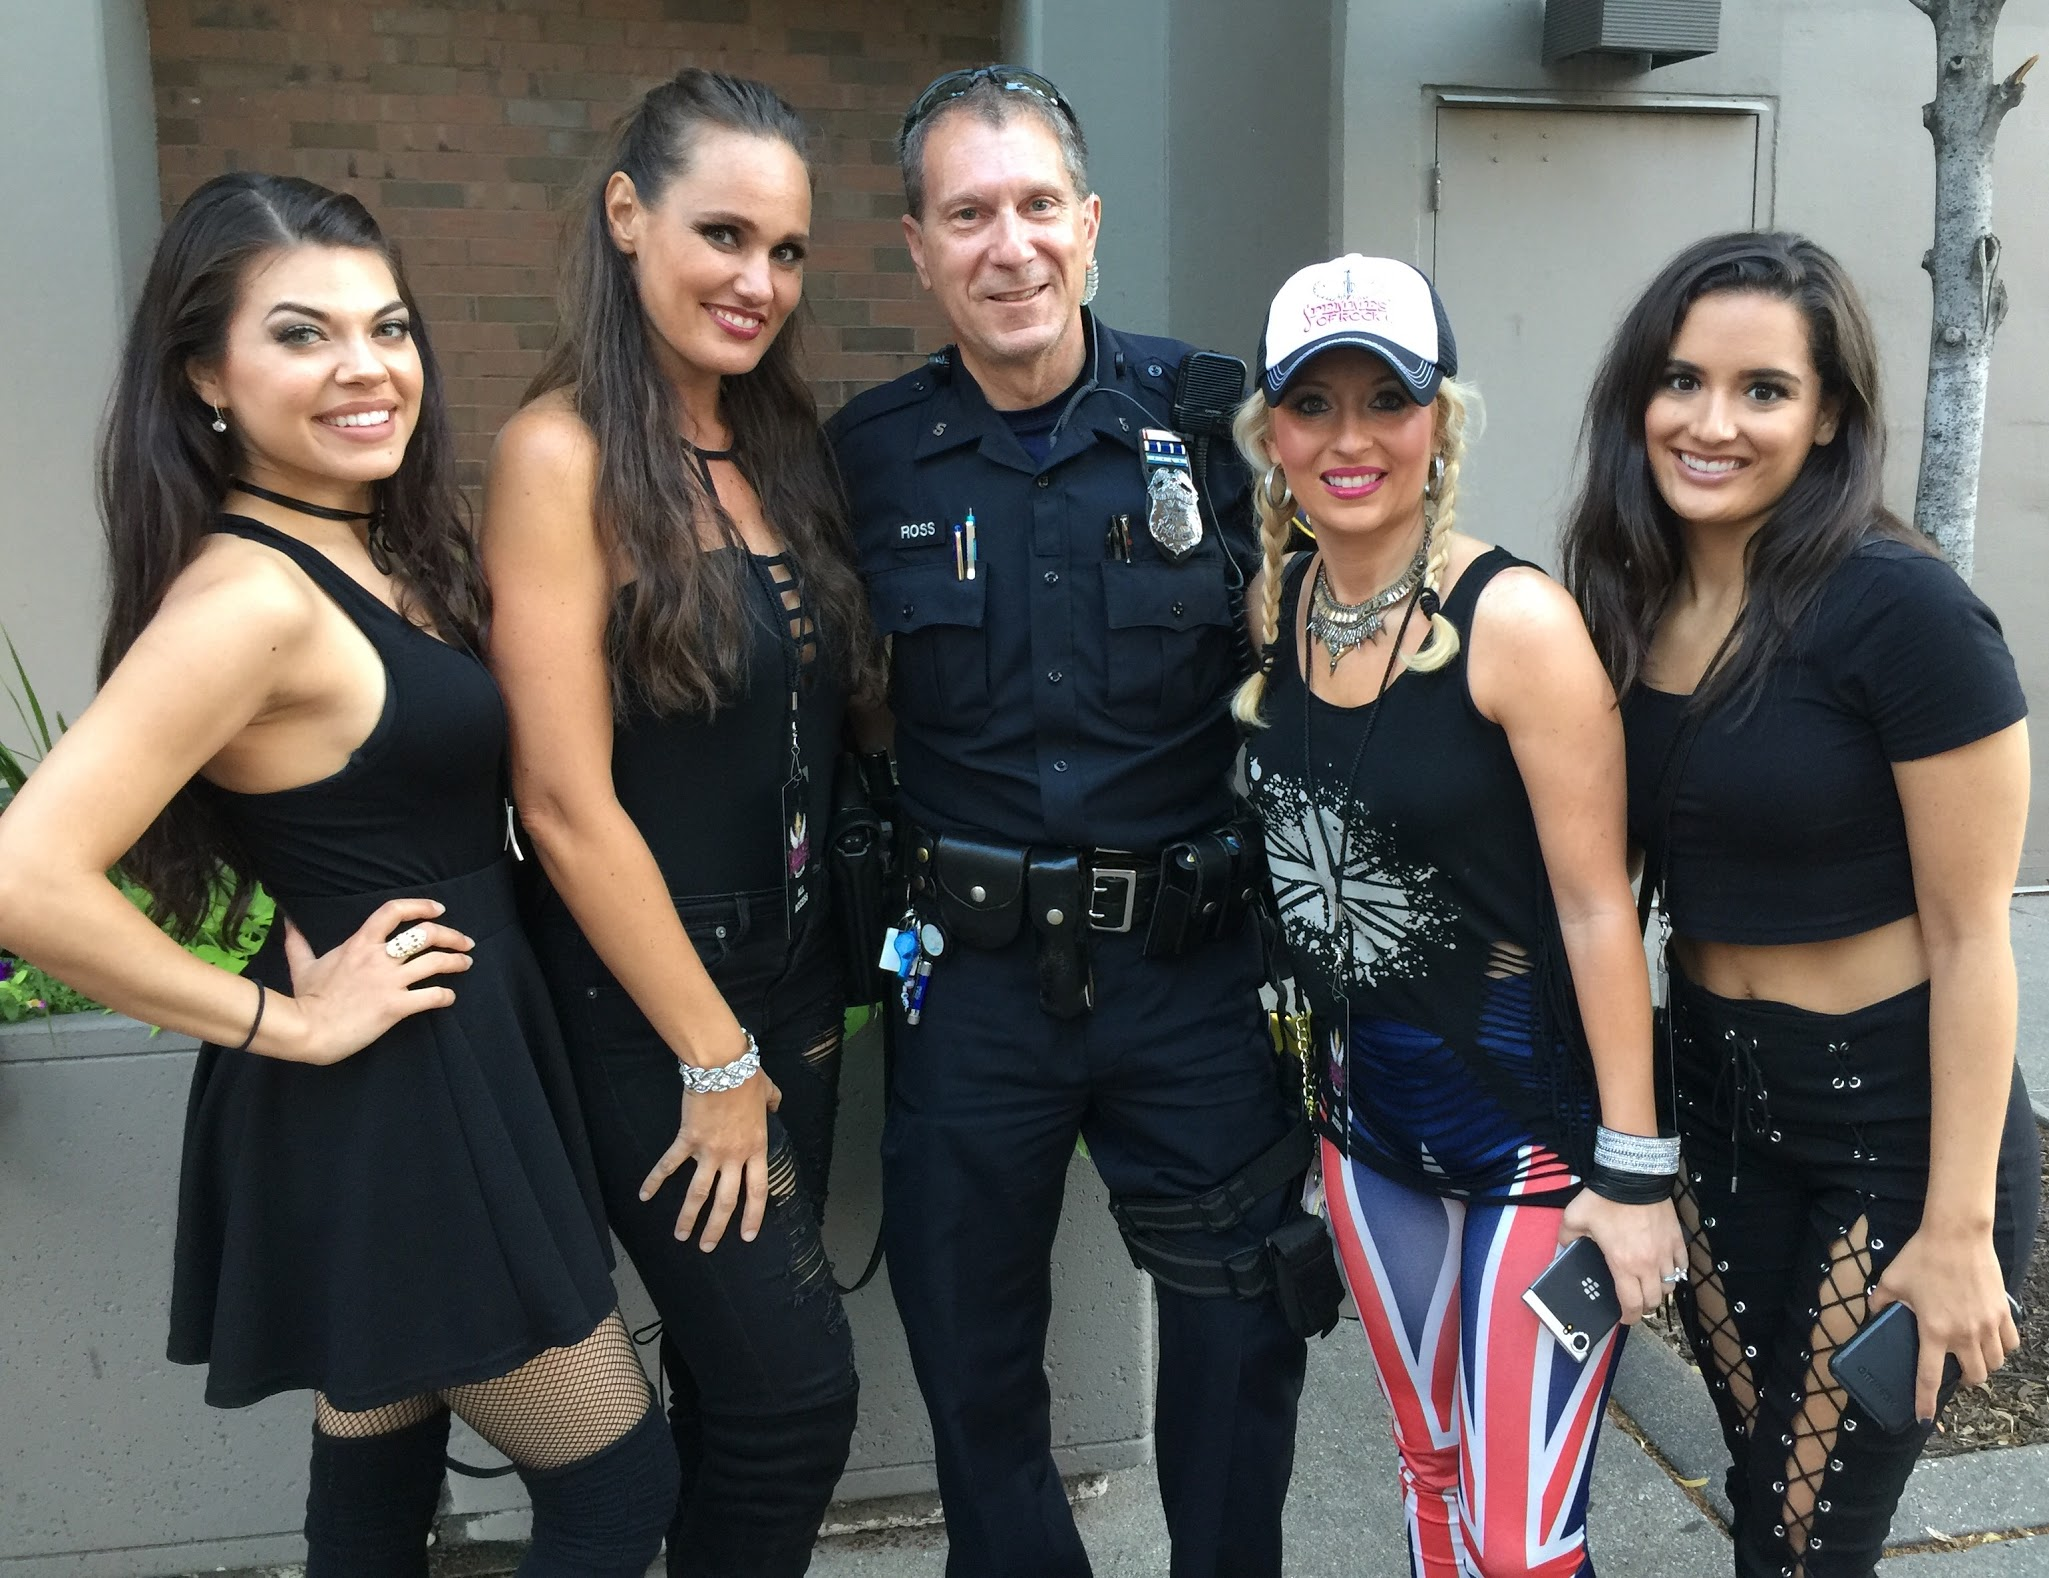 Mitch Ross of the Milwaukee PD with the Femmes.